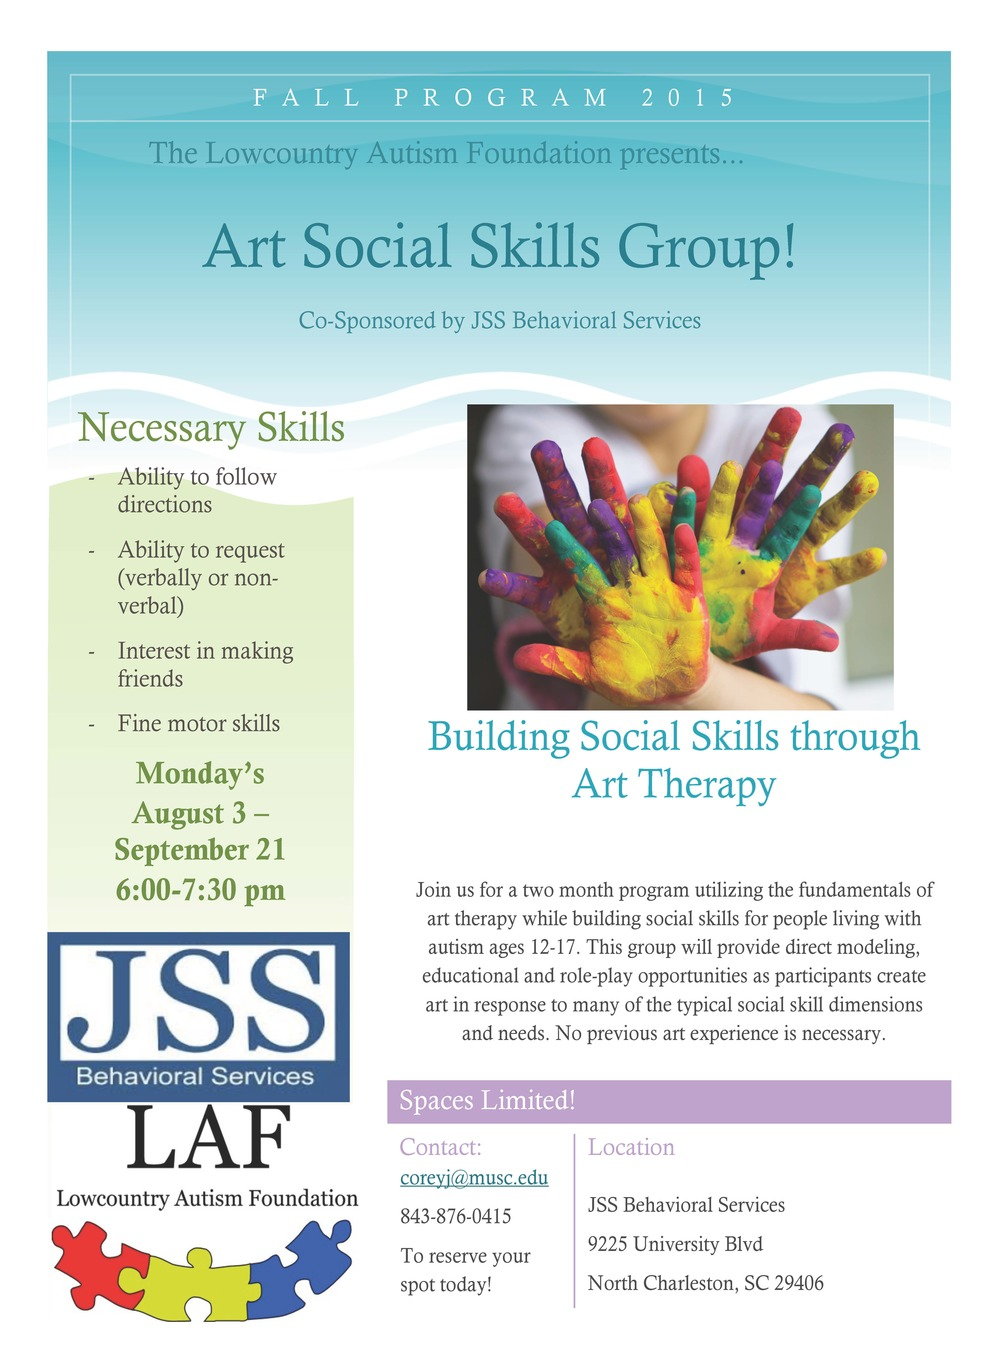 Art Therapy Group Flyer.jpg